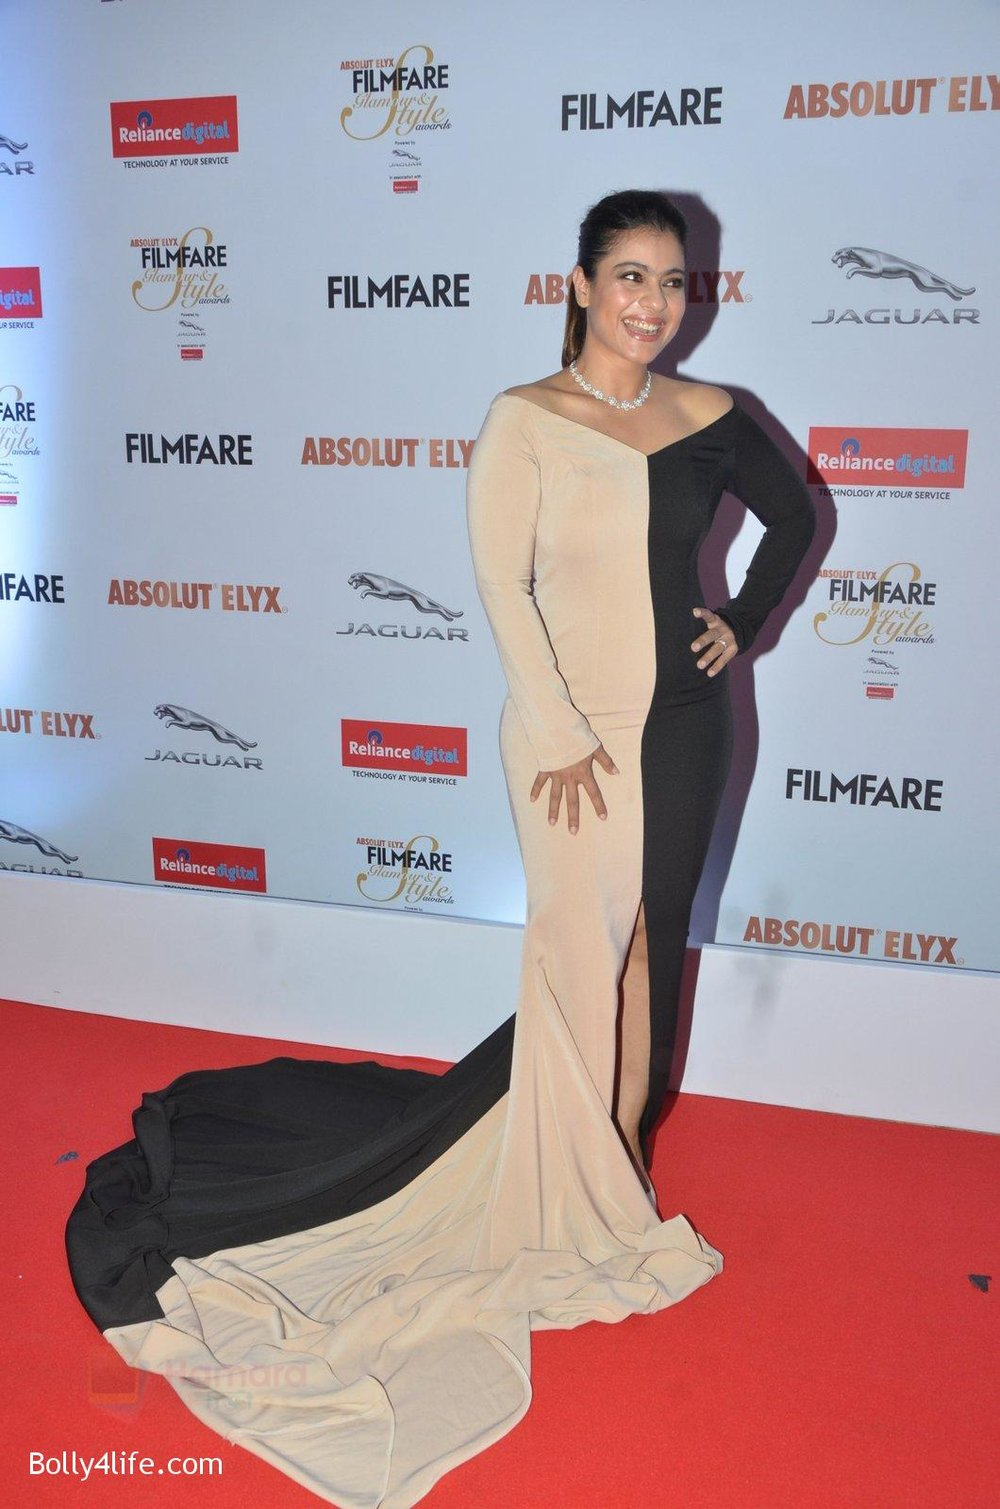 Kajol-at-Filmfare-Glamour-Style-Awards-2016-in-Mumbai-on-15th-Oct-2016-1516.jpg